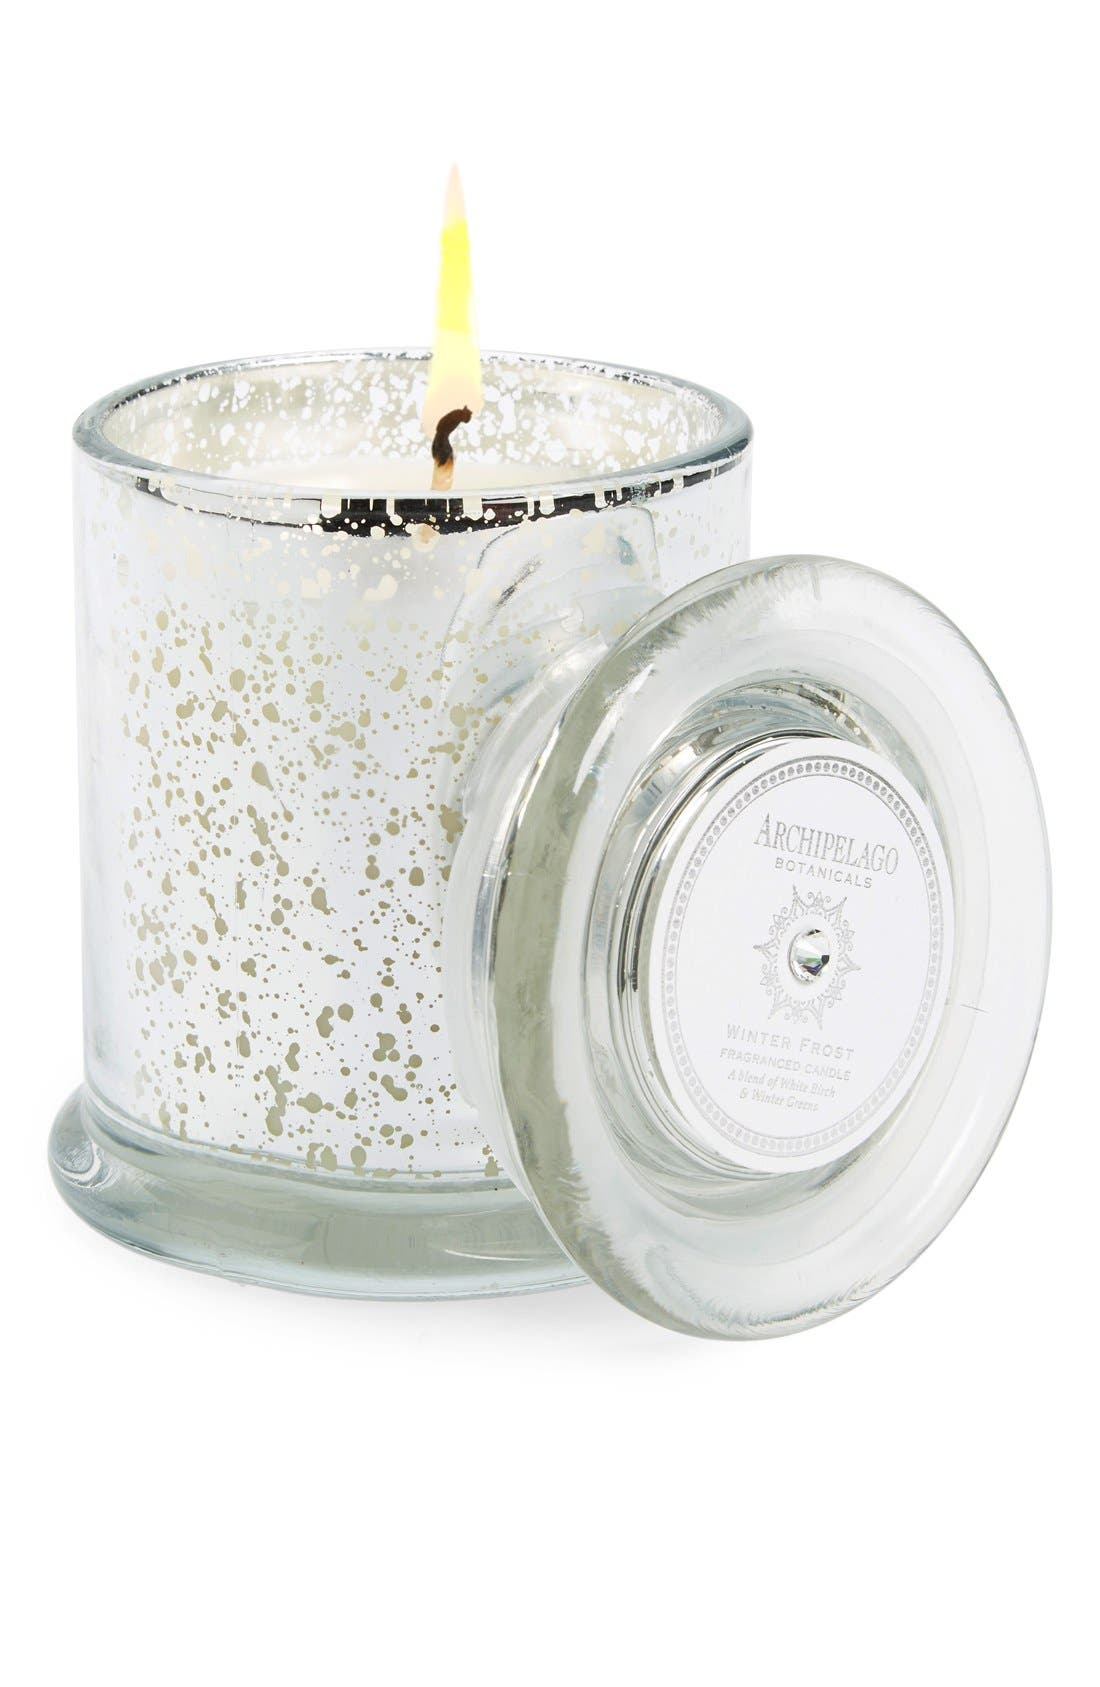 Archipelago Botanicals 'Winter Frost' Jar Candle